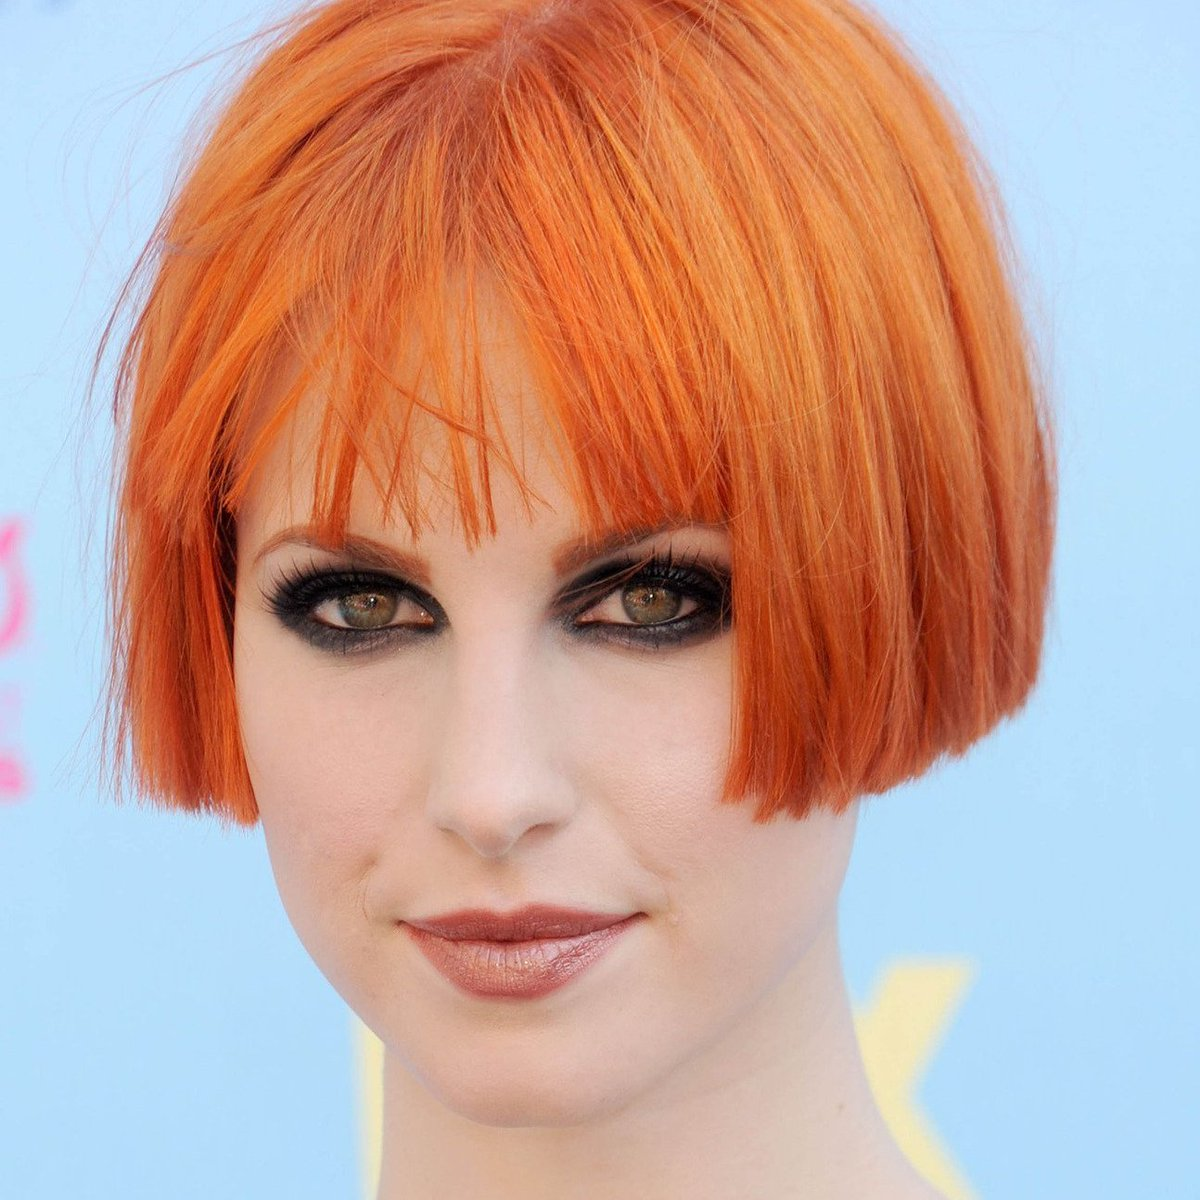 Paramore On Twitter Hayley Williams Debuted Her Ultra Short Bob